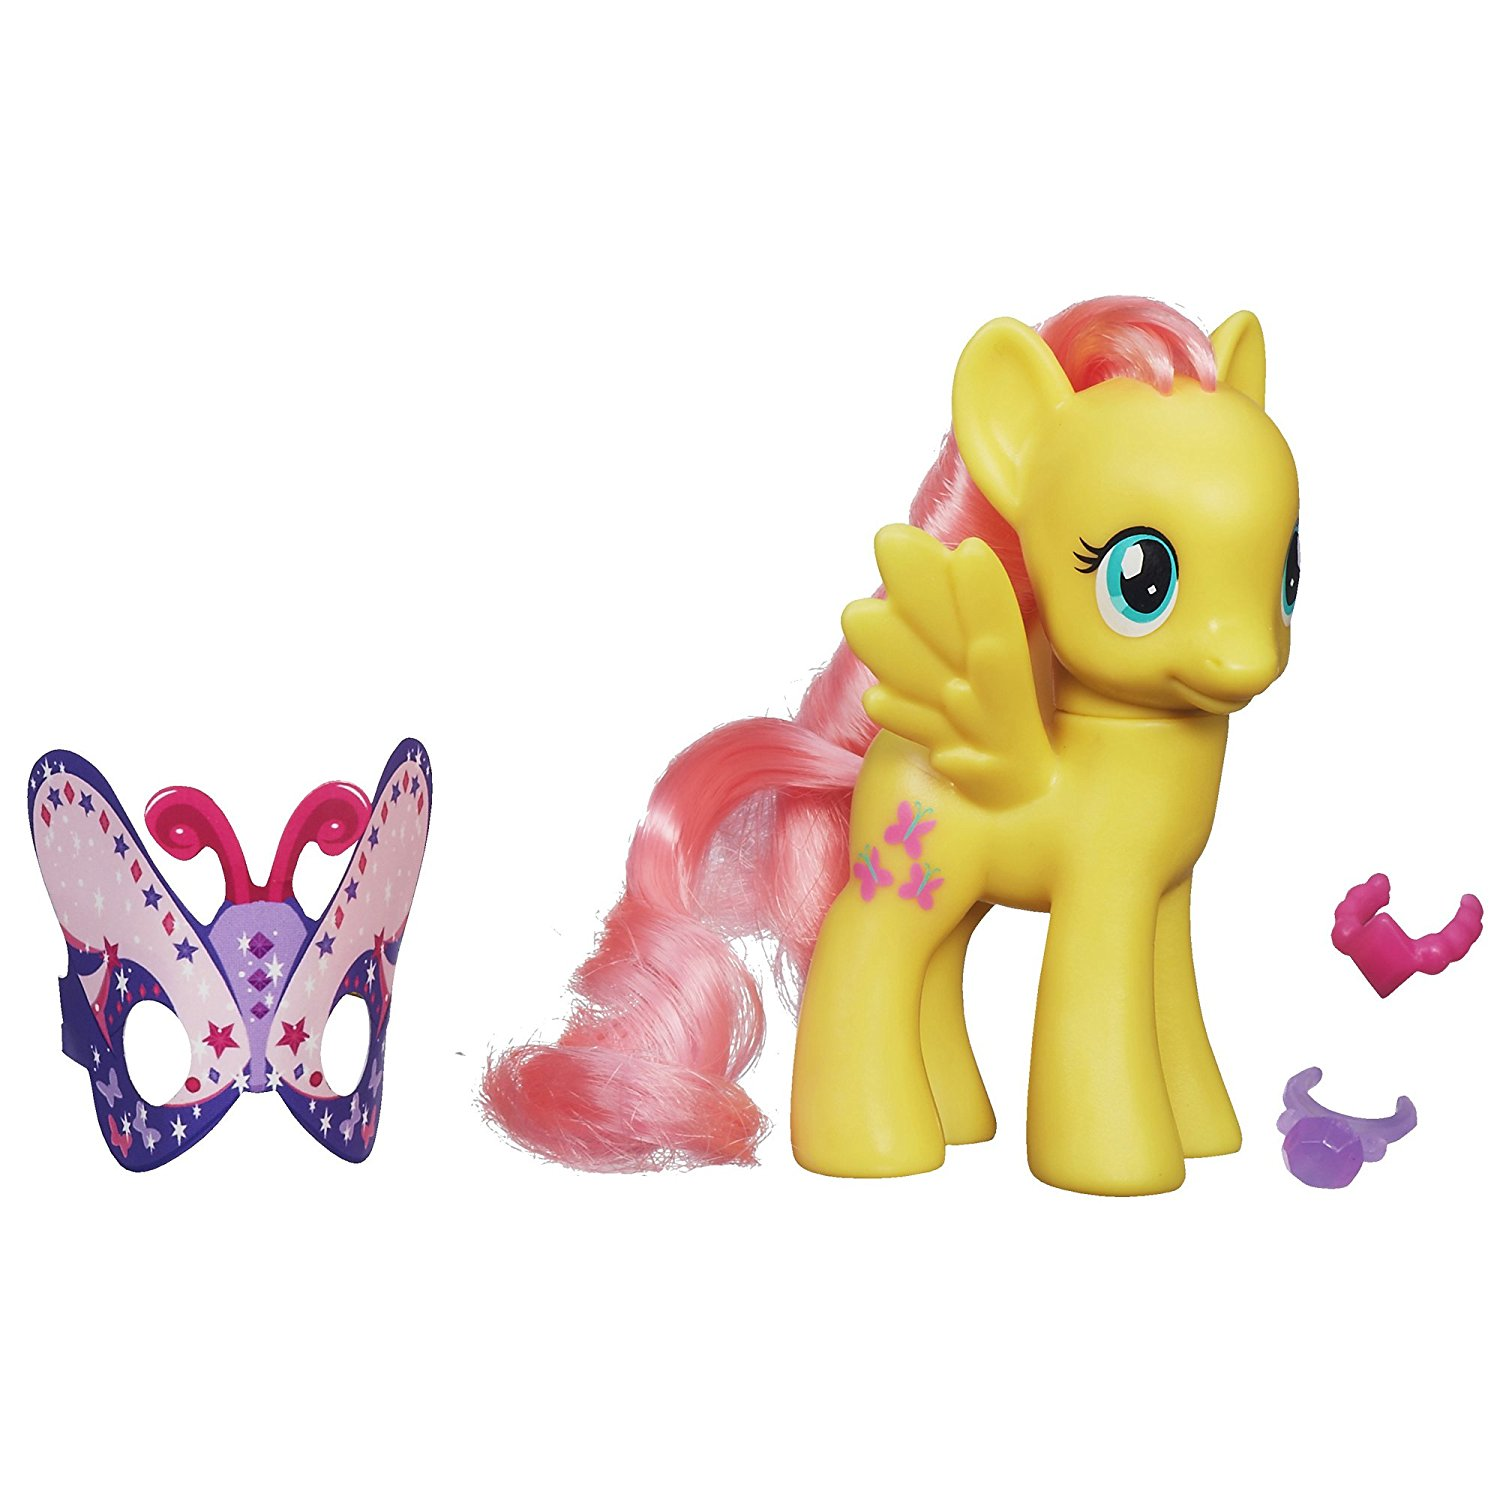 Princess Celebration Fluttershy Figure Doll, Stylish Fluttershy pony figure By My Little Pony